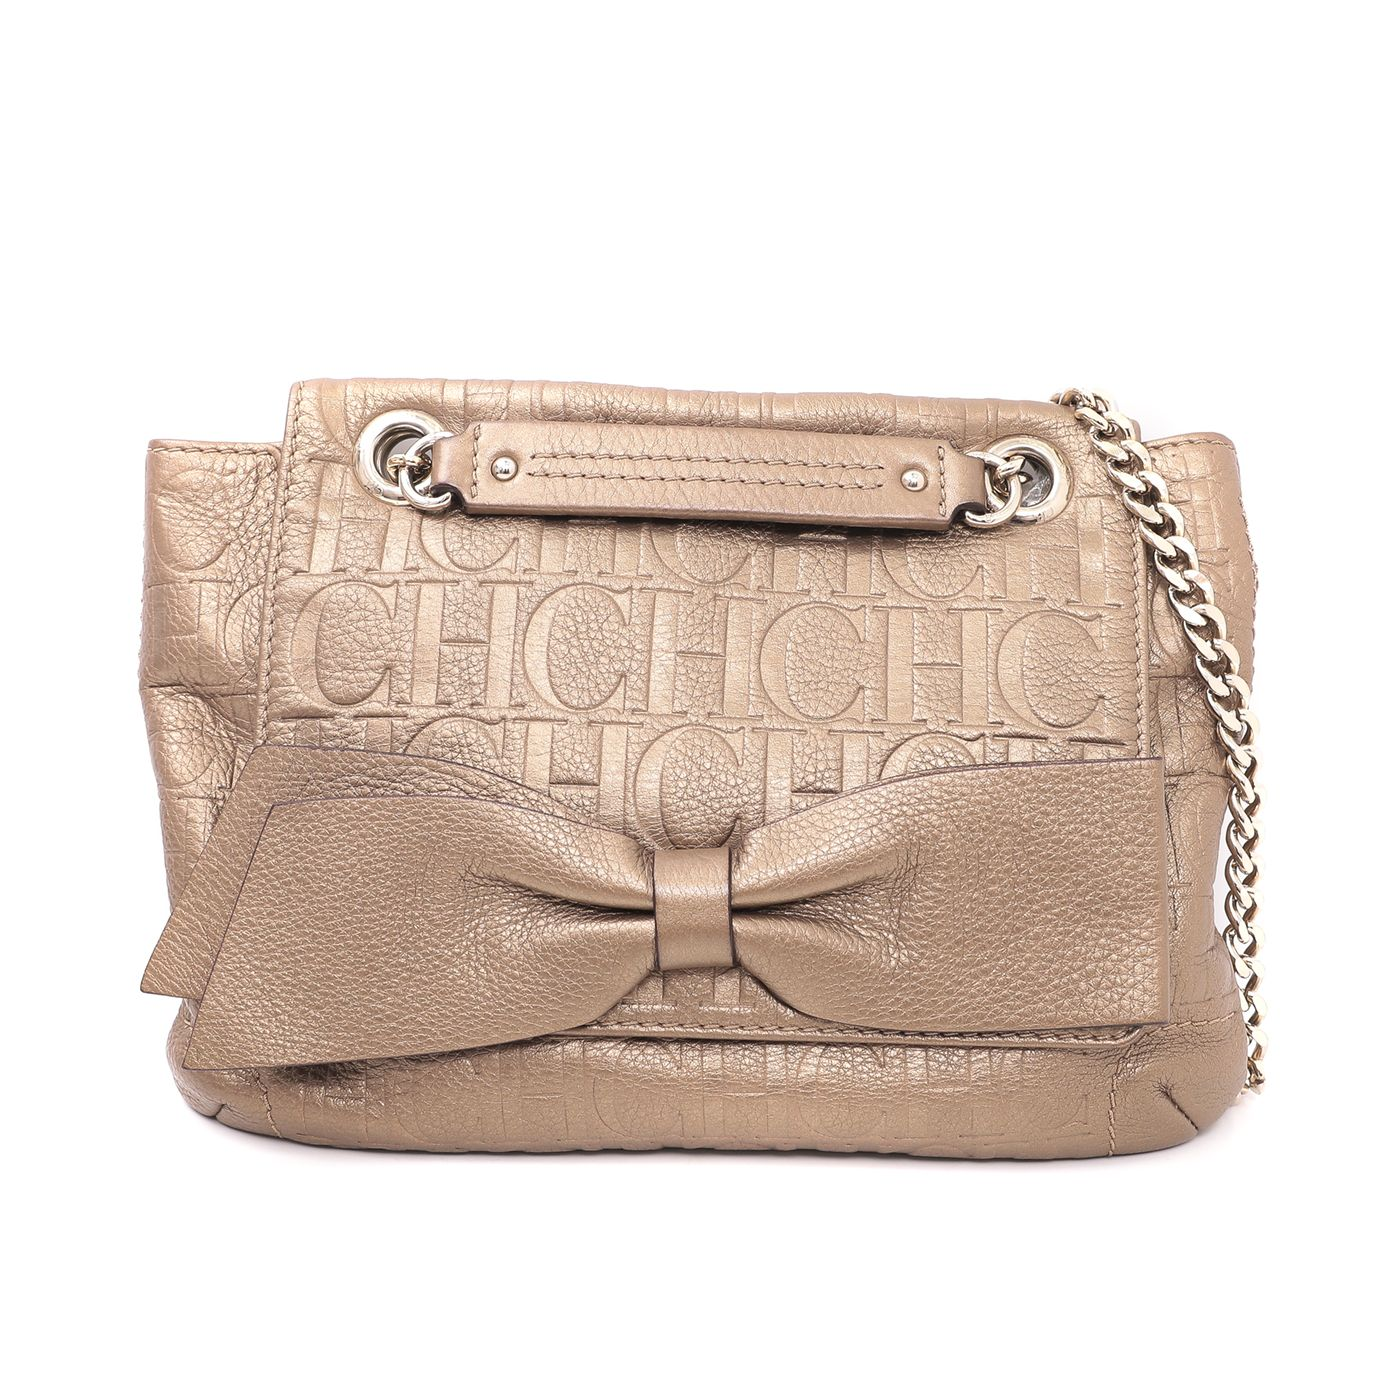 Carolina Herrera Bronze Monogram Audrey Bow Chain Bag